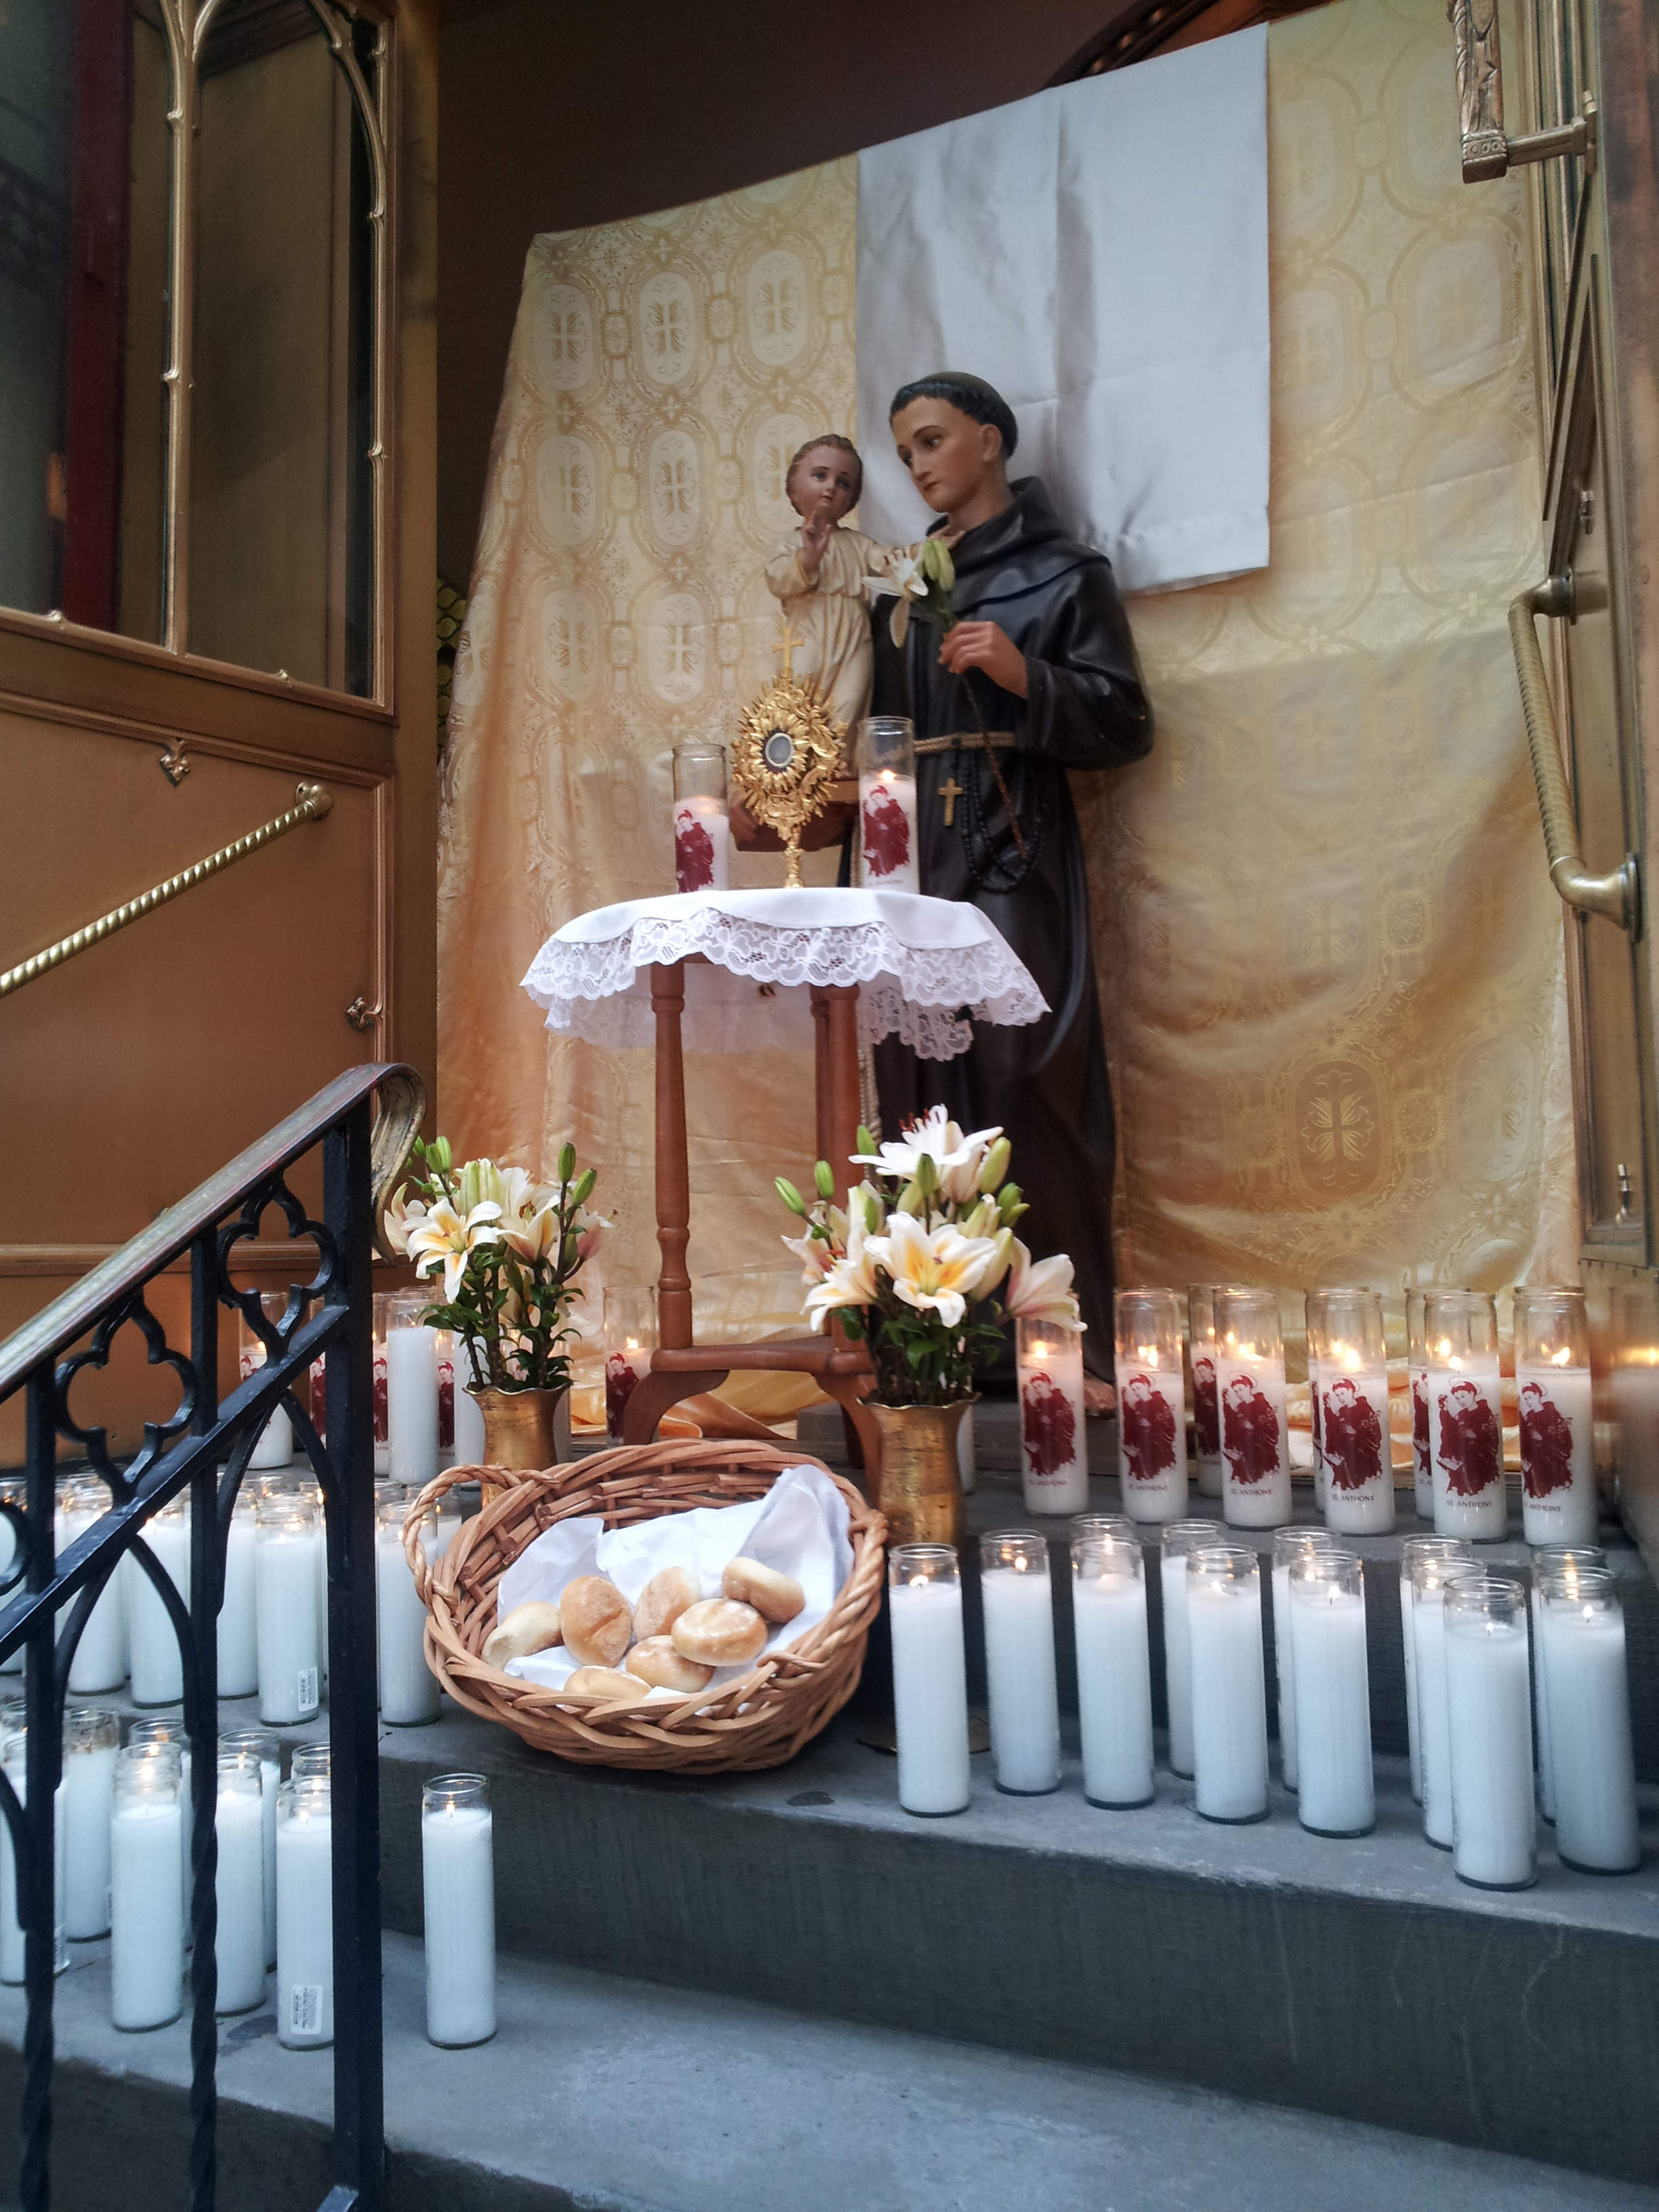 St. Anthony's Feast Day 2012 at Holy Innocents